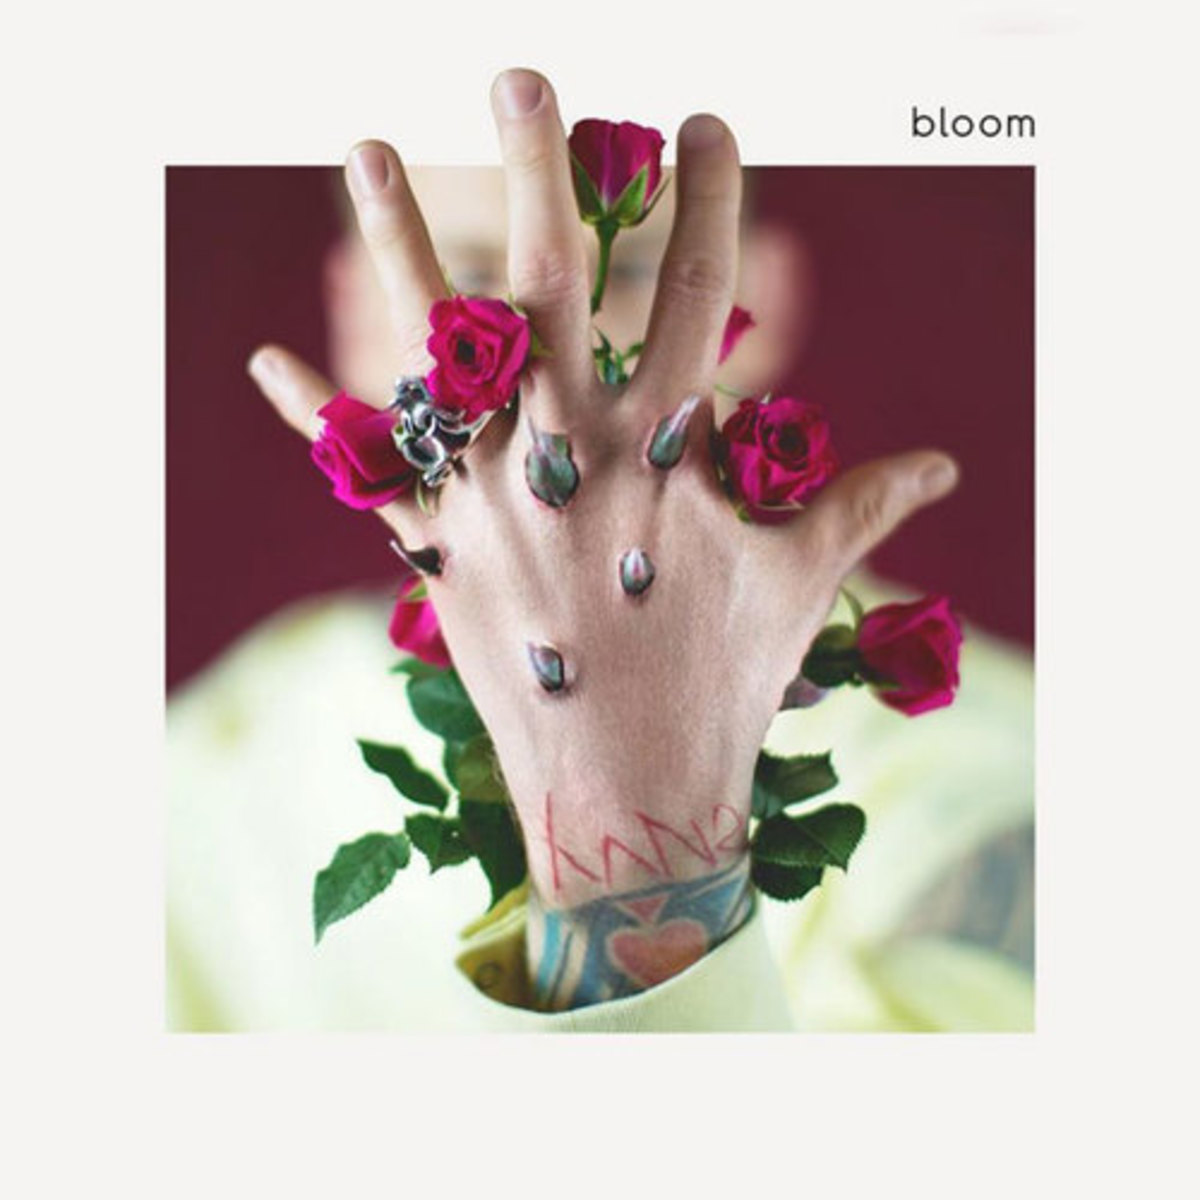 mgk-bloom.jpg